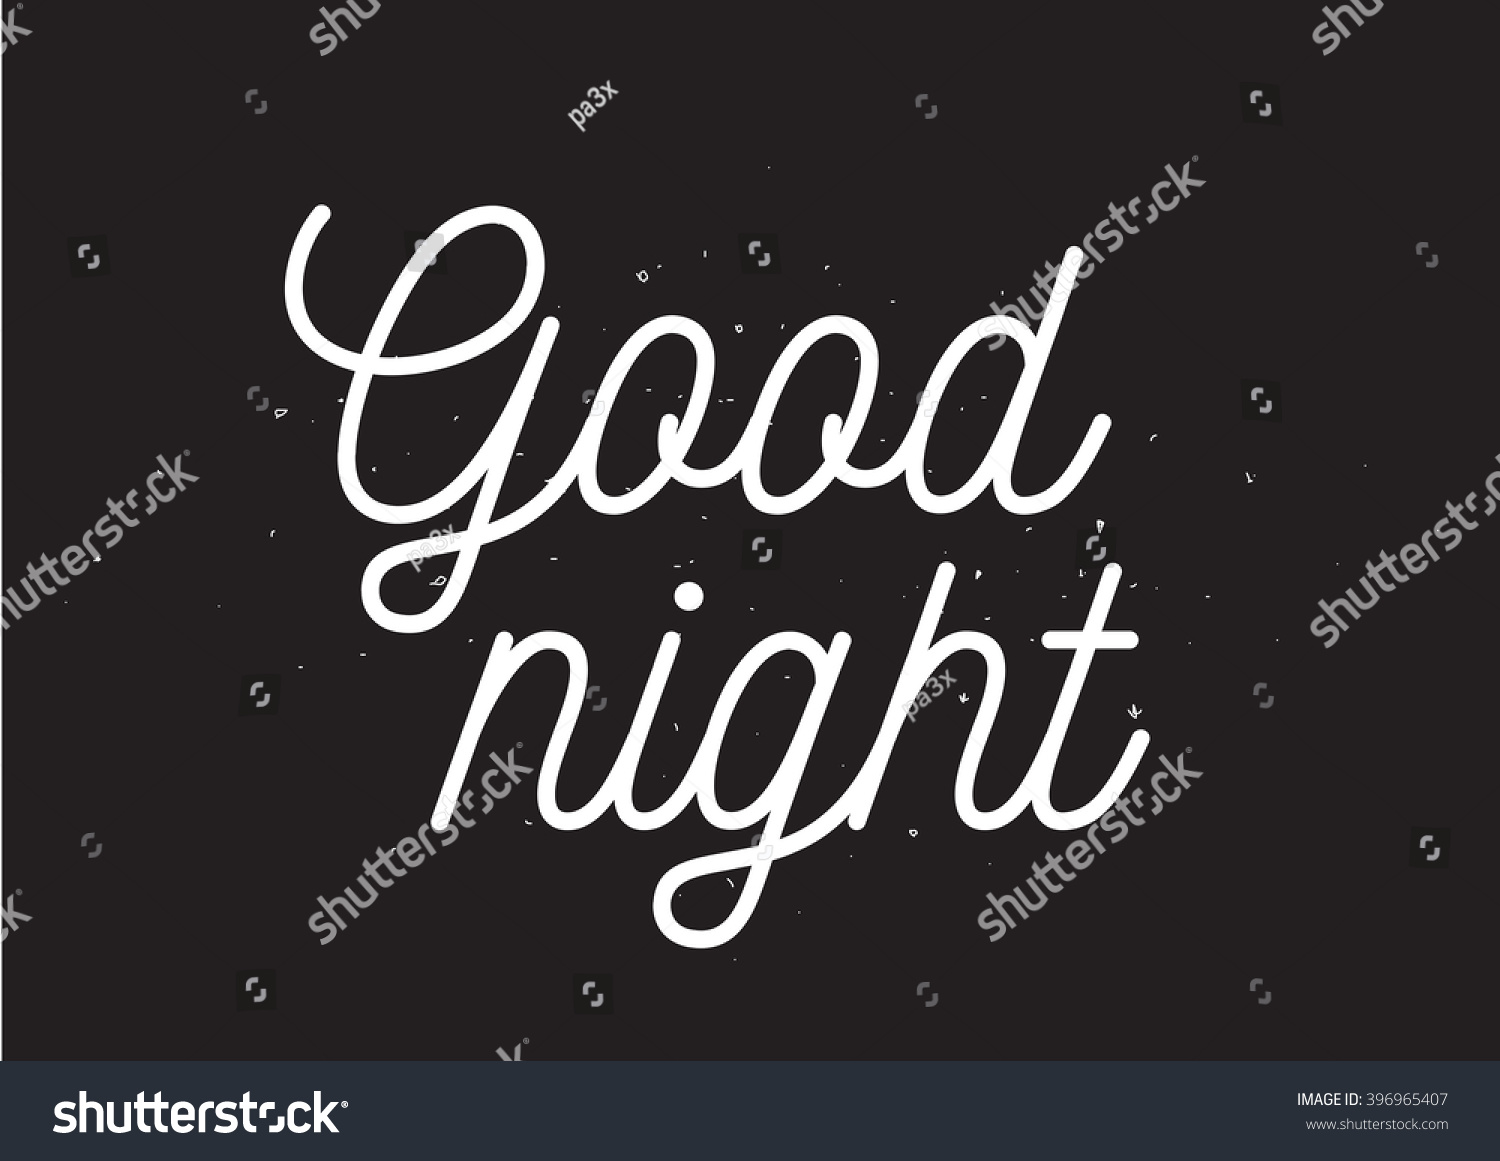 Good Night Inscription Greeting Card With Calligraphy Hand Drawn